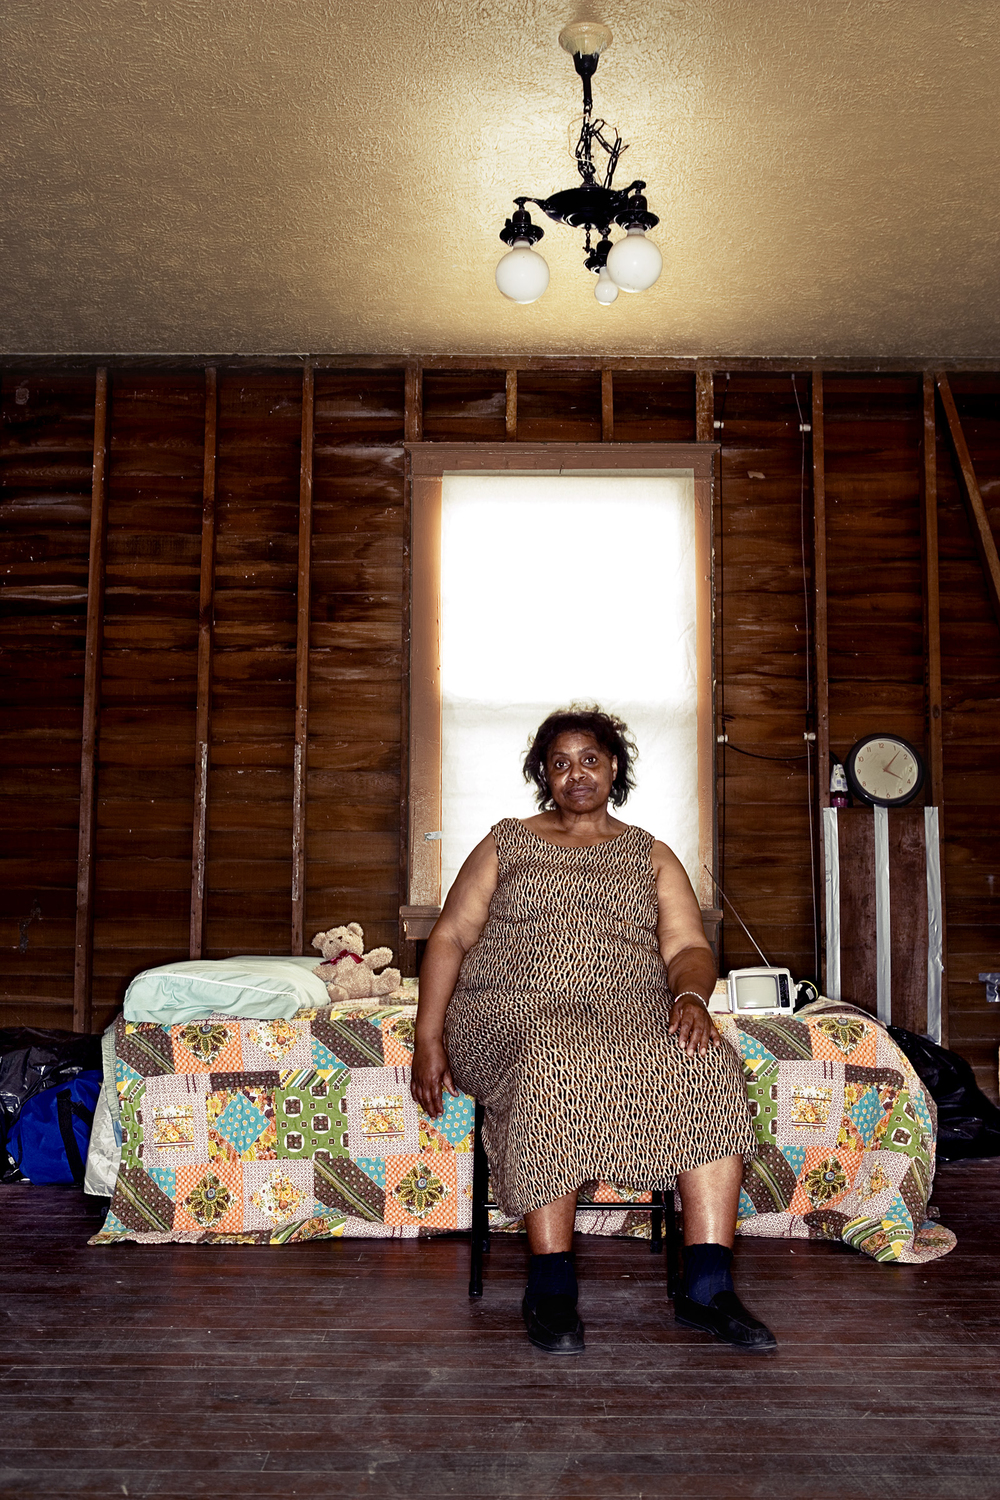 Post Hurricane Katrina: Carolyn on bed  © Stephen Wilkes